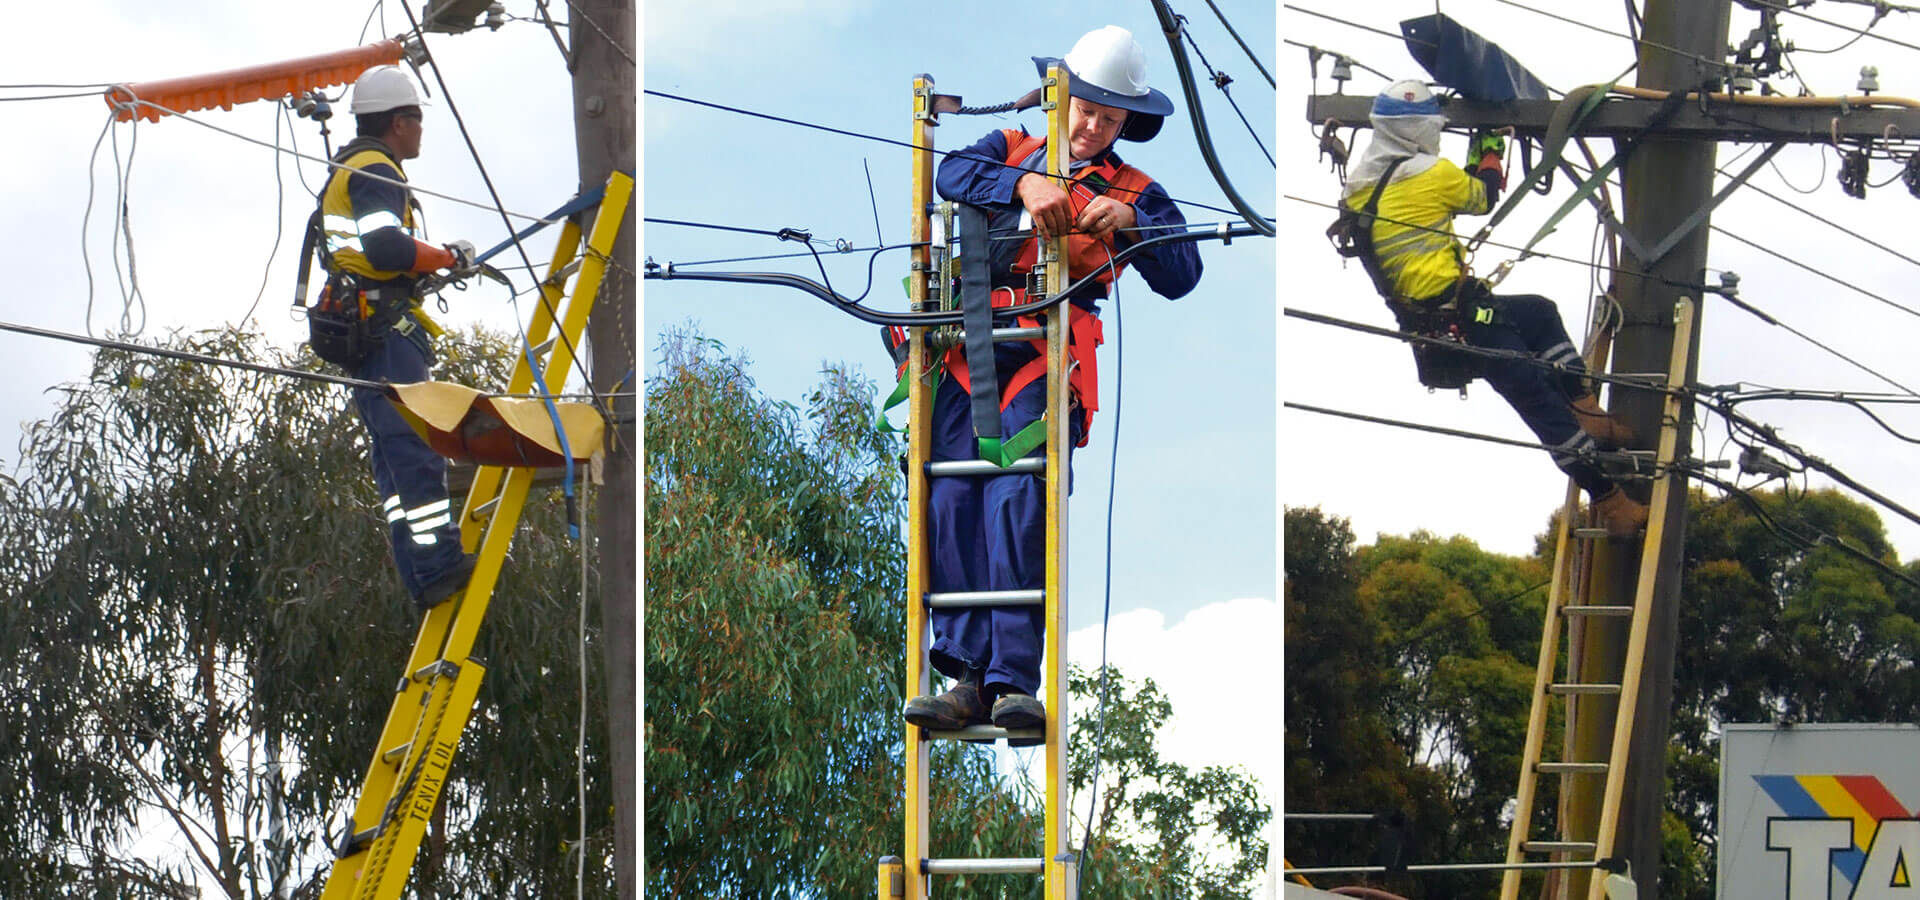 The Branach fibreglass  PowerMaster Extension Ladder being used on electrical power poles.